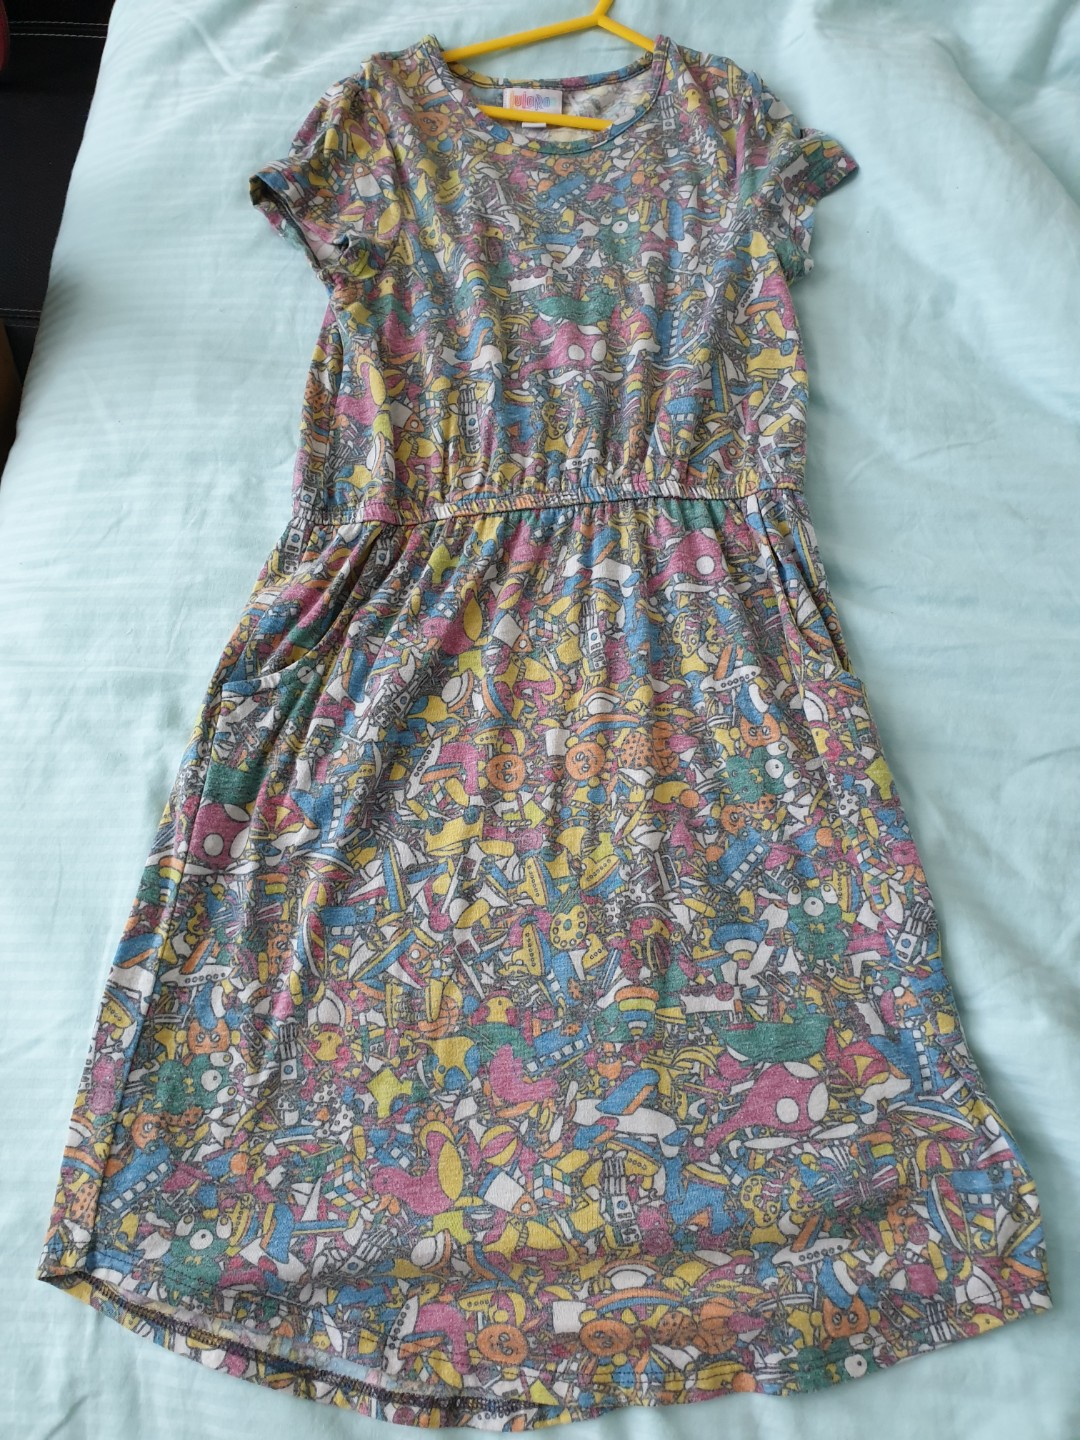 1e0dd8ce742 Preloved Lularoe LLR Girls Mae Dress Sz 12 (rare design - toys ...